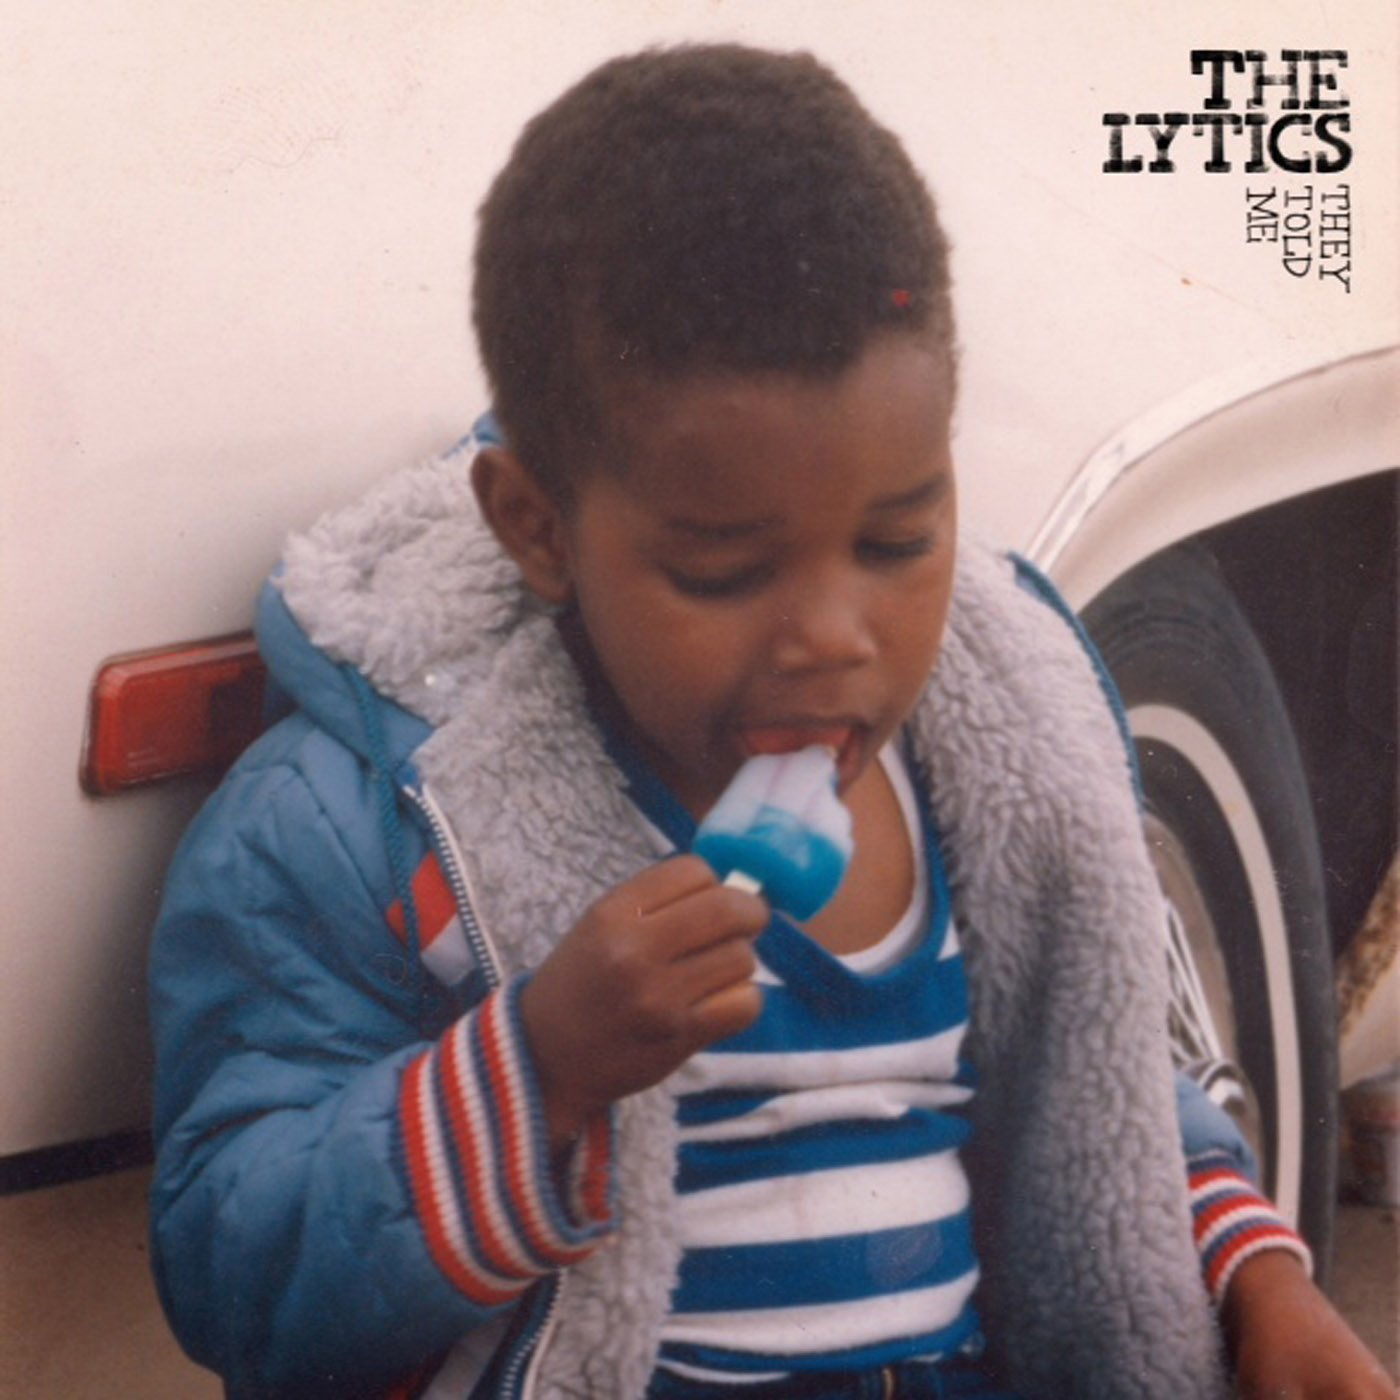 Video: The Lytics – They Said